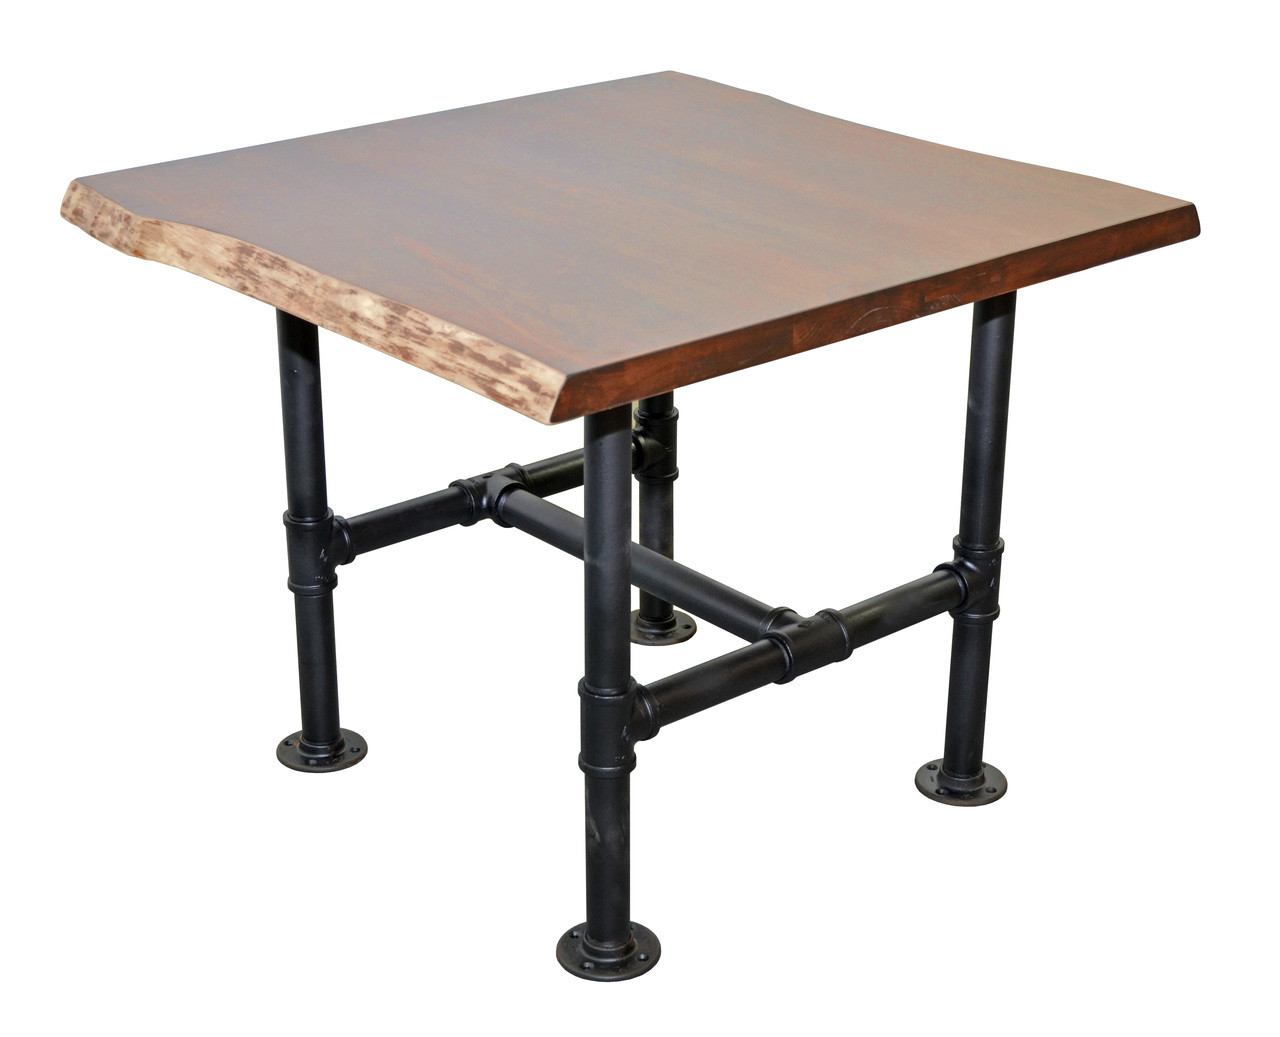 Peachy Exclusive Live Edge Maple Slab Restaurant Table Top On Custom Pipe Frame Made In Usa Download Free Architecture Designs Scobabritishbridgeorg